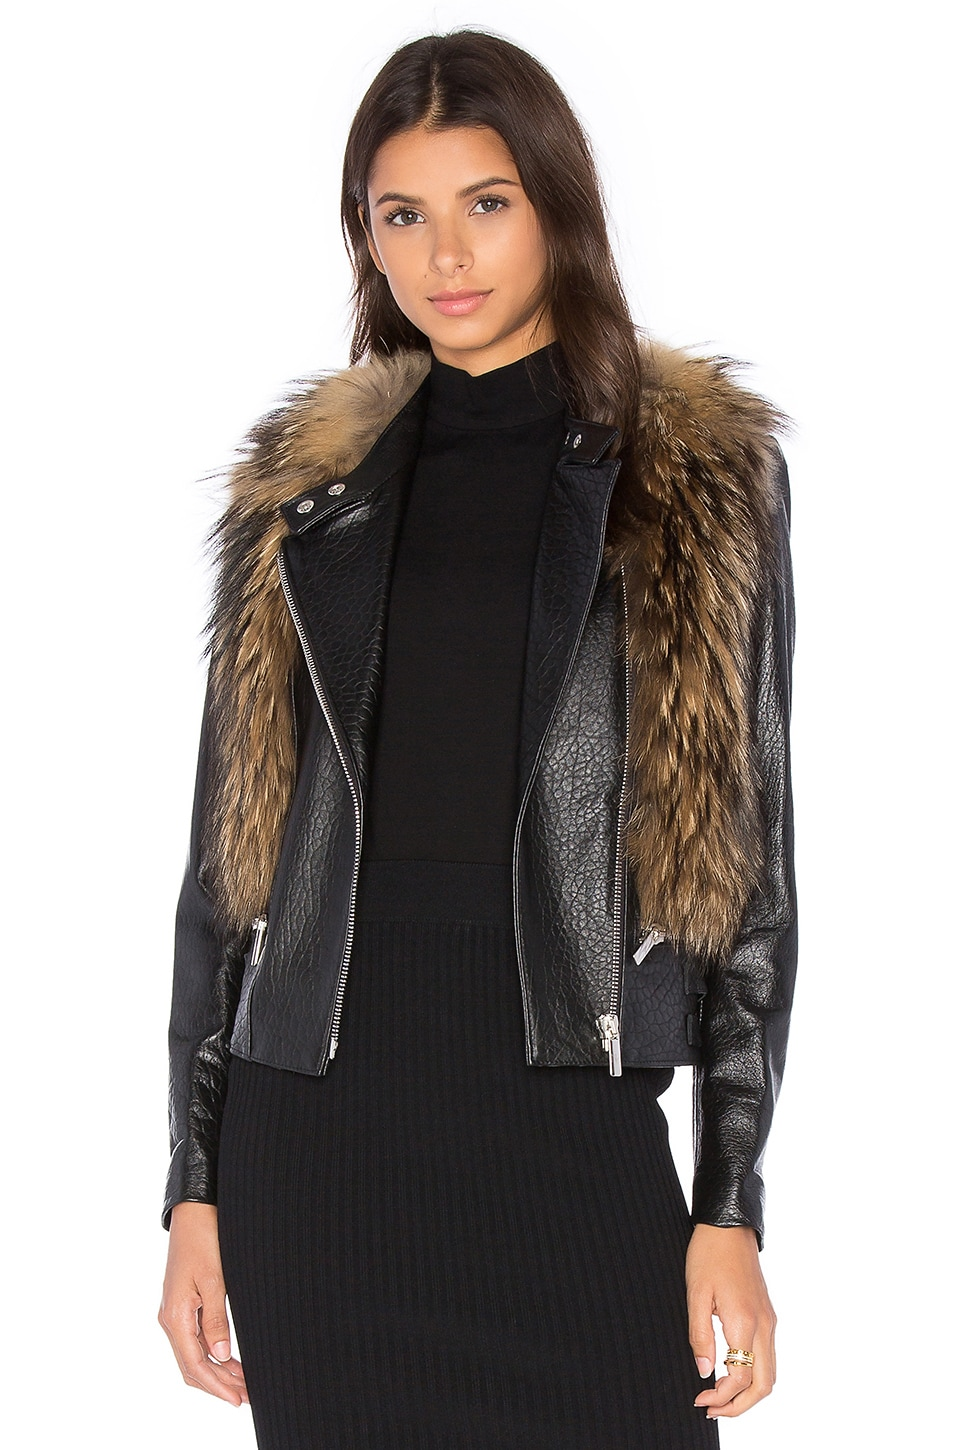 NOUR HAMMOUR Flashing Lights Jacket with Asiatic Raccoon Fur in Natural Raccoon Fur & Black Leather